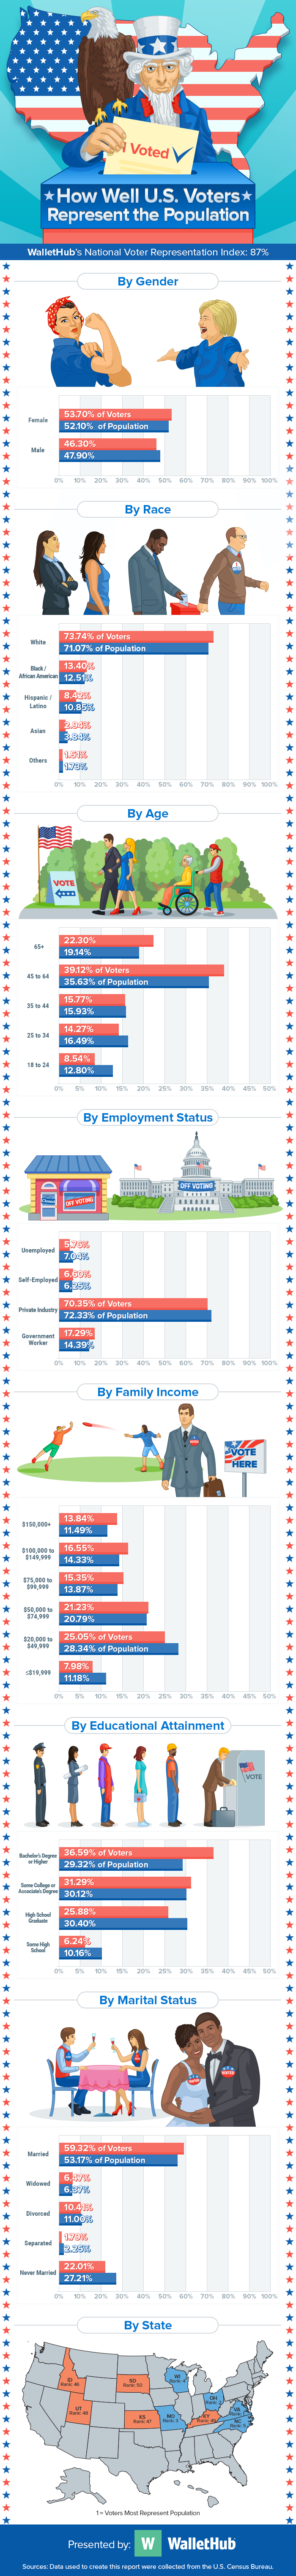 How-U.S.-Voters-Represent-the-Population-Infographic-v4